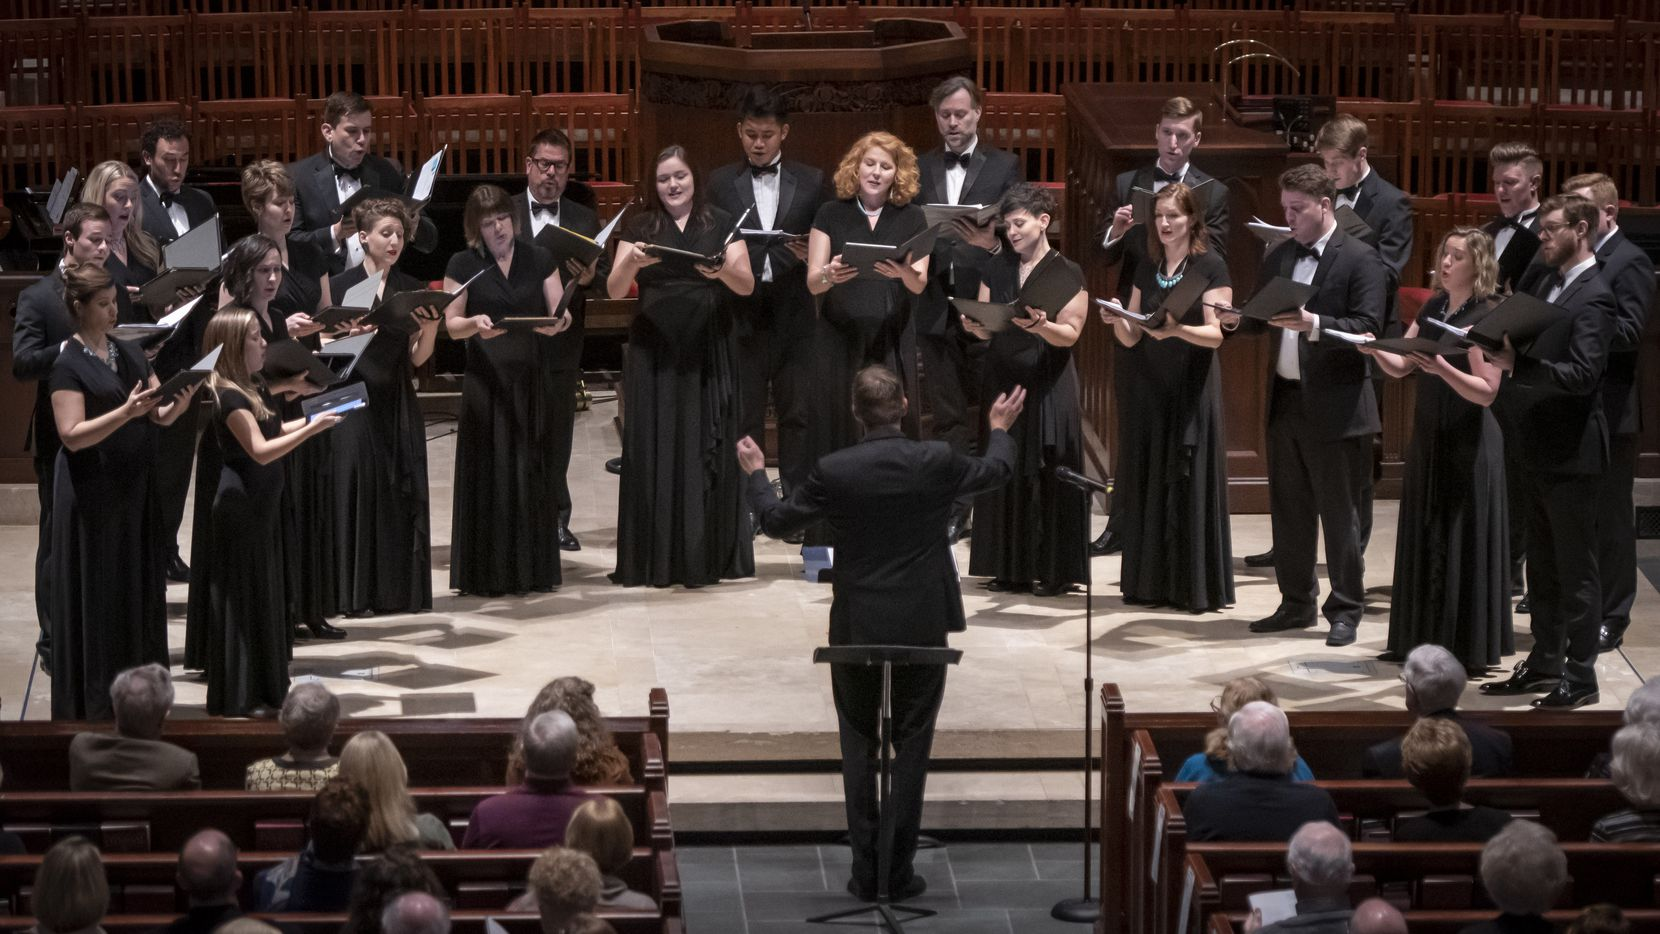 Members of the Santa Fe Desert Chorale perform under the direction of Joshua Habermann at Highland Park United Methodist Church on March 1, 2020 in Dallas, Texas. (Robert W. Hart/Special Contributor)